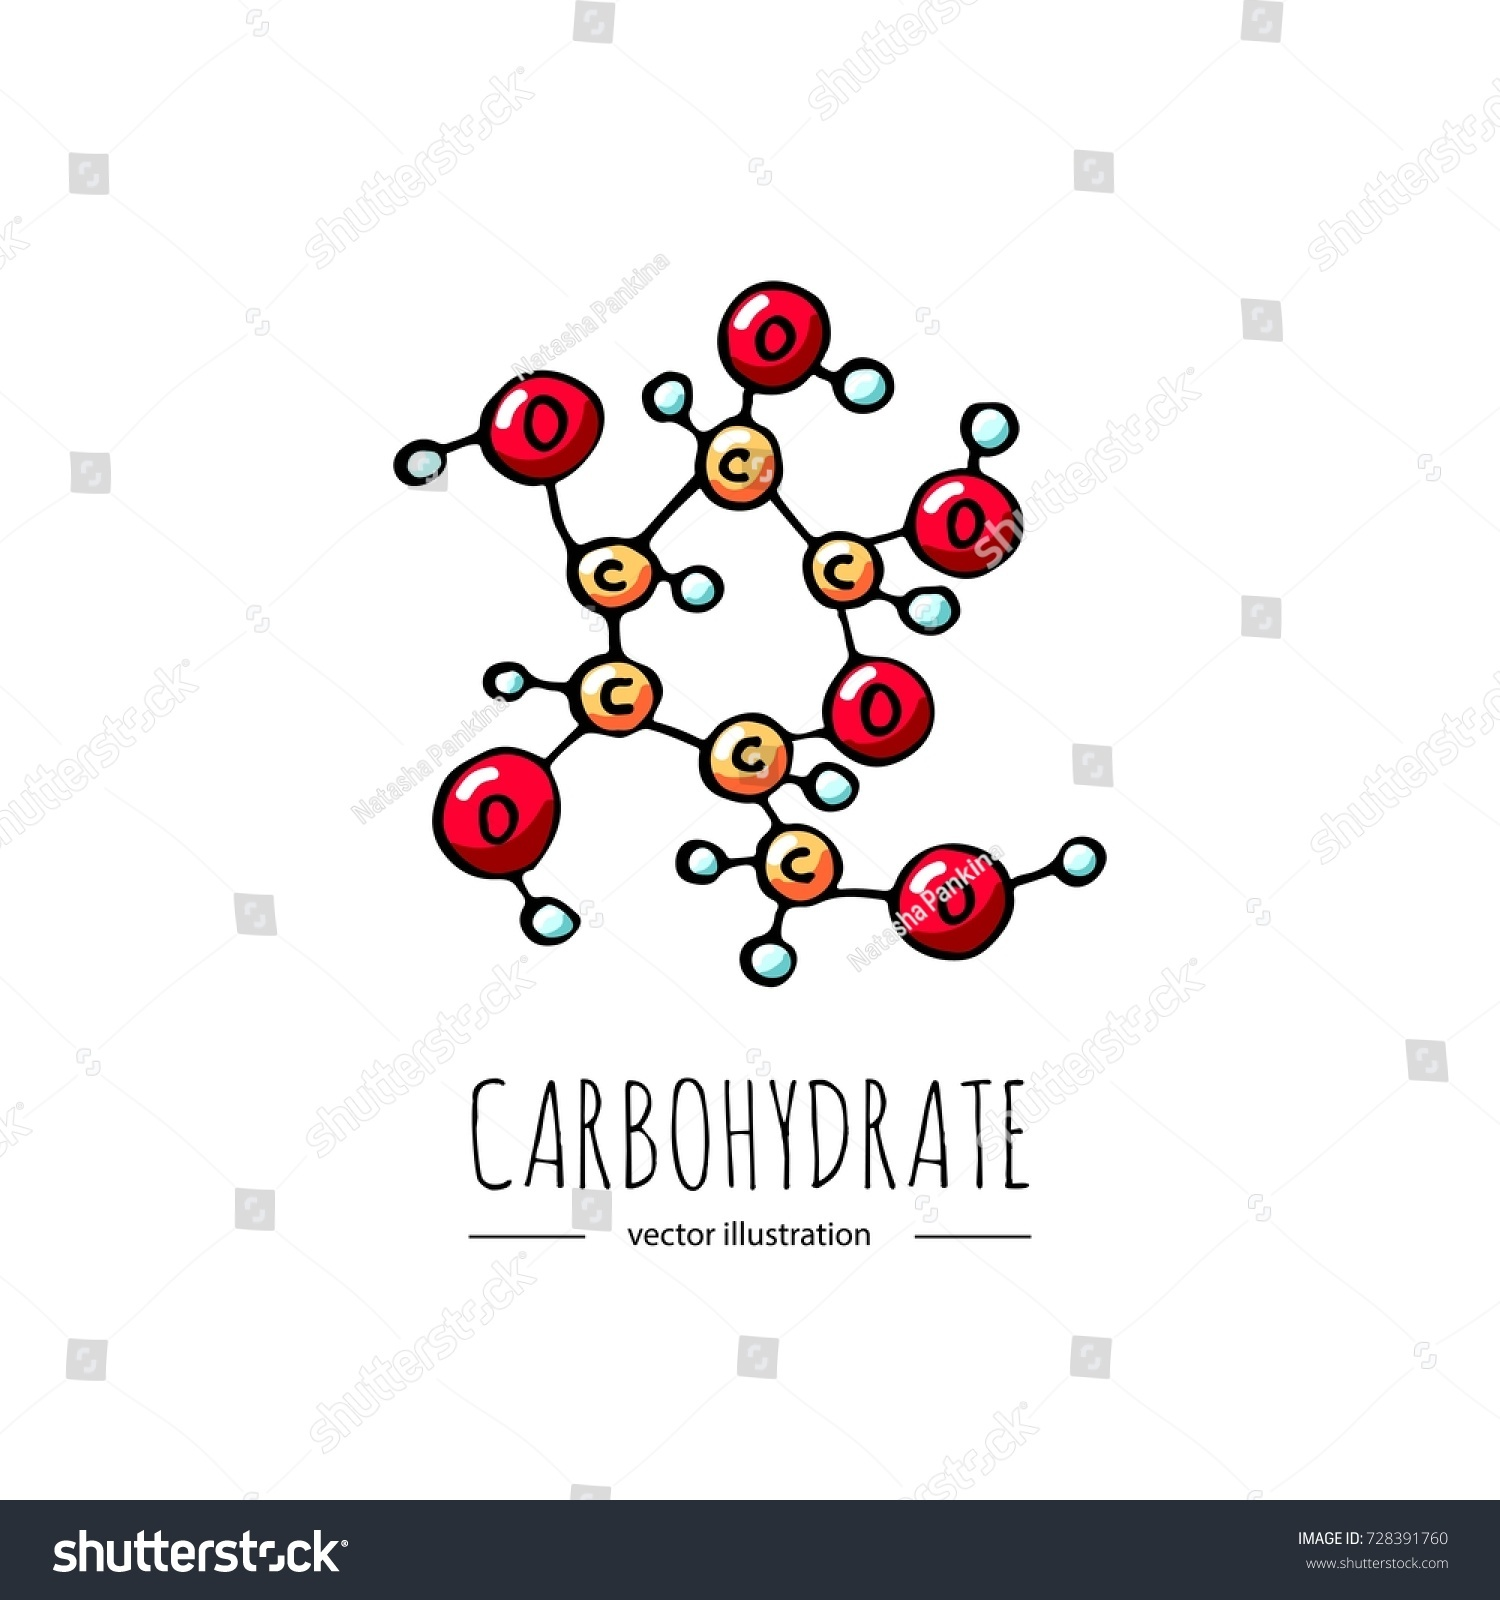 Hand drawn doodle carbohydrate chemical formula stock vector hand drawn doodle carbohydrate chemical formula icon vector illustration carbs dieting symbol cartoon sketch weight loss publicscrutiny Choice Image